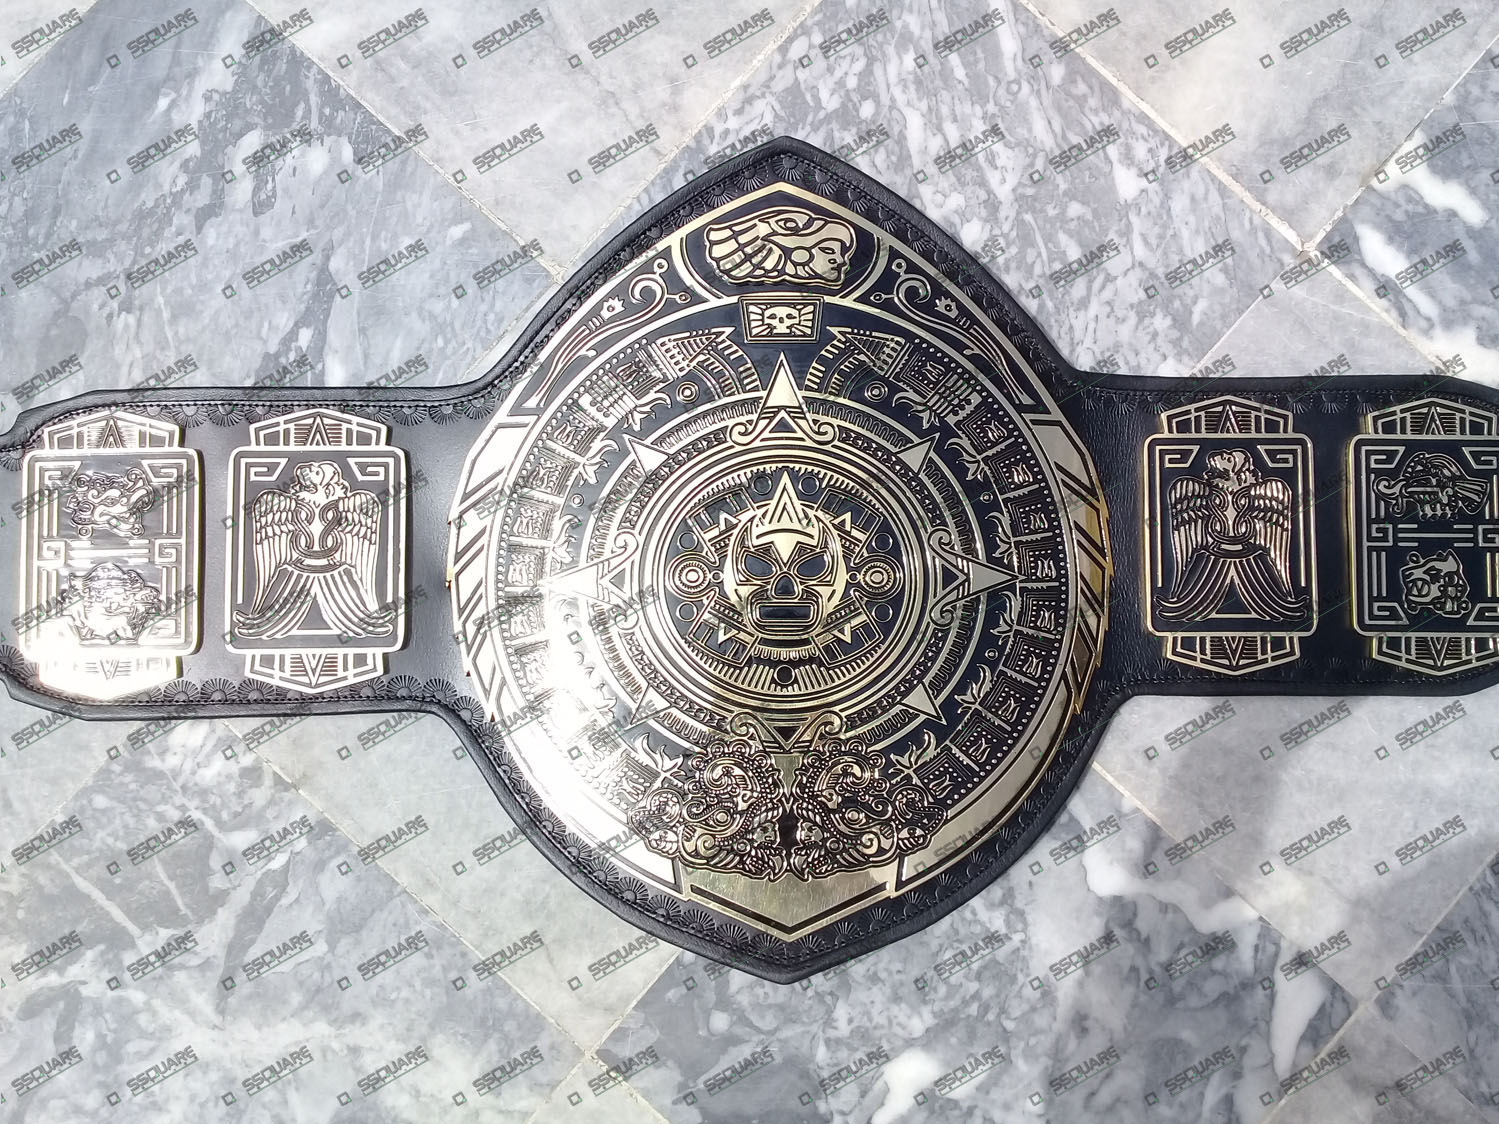 Lucha Underground Heavyweight Wrestling Champion replica belt